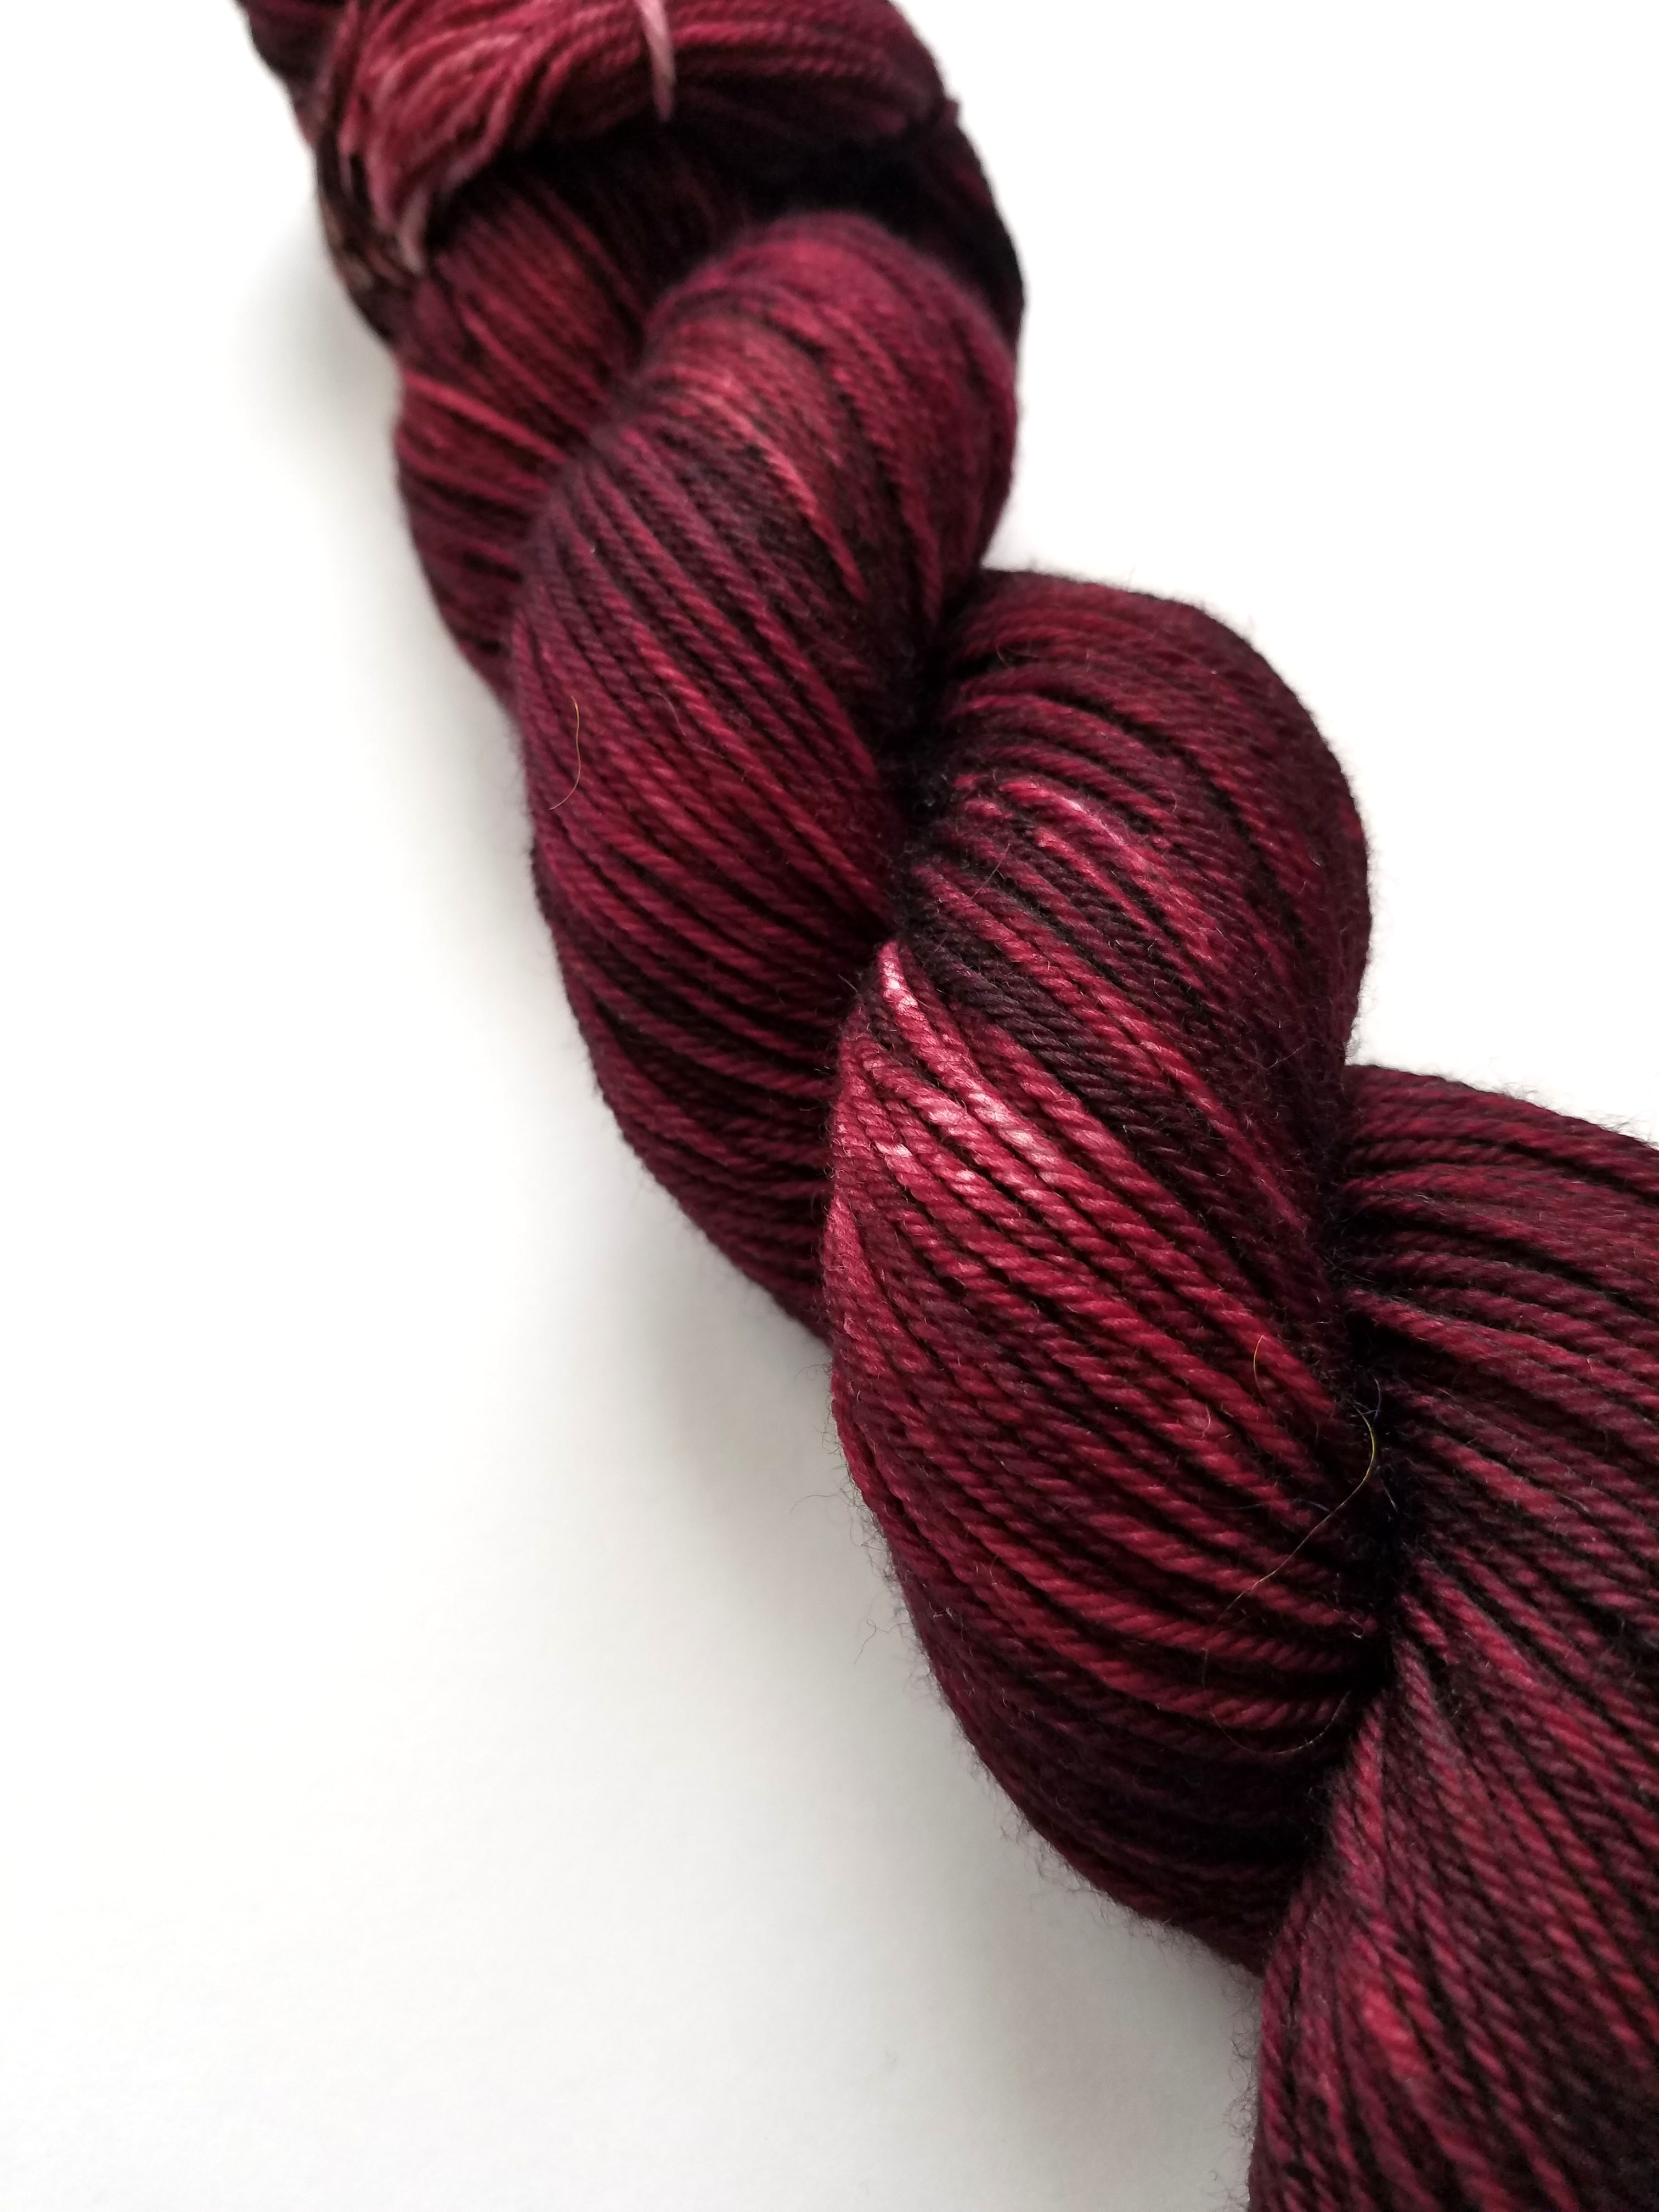 Date Night Hand Dyed Yarn Limited